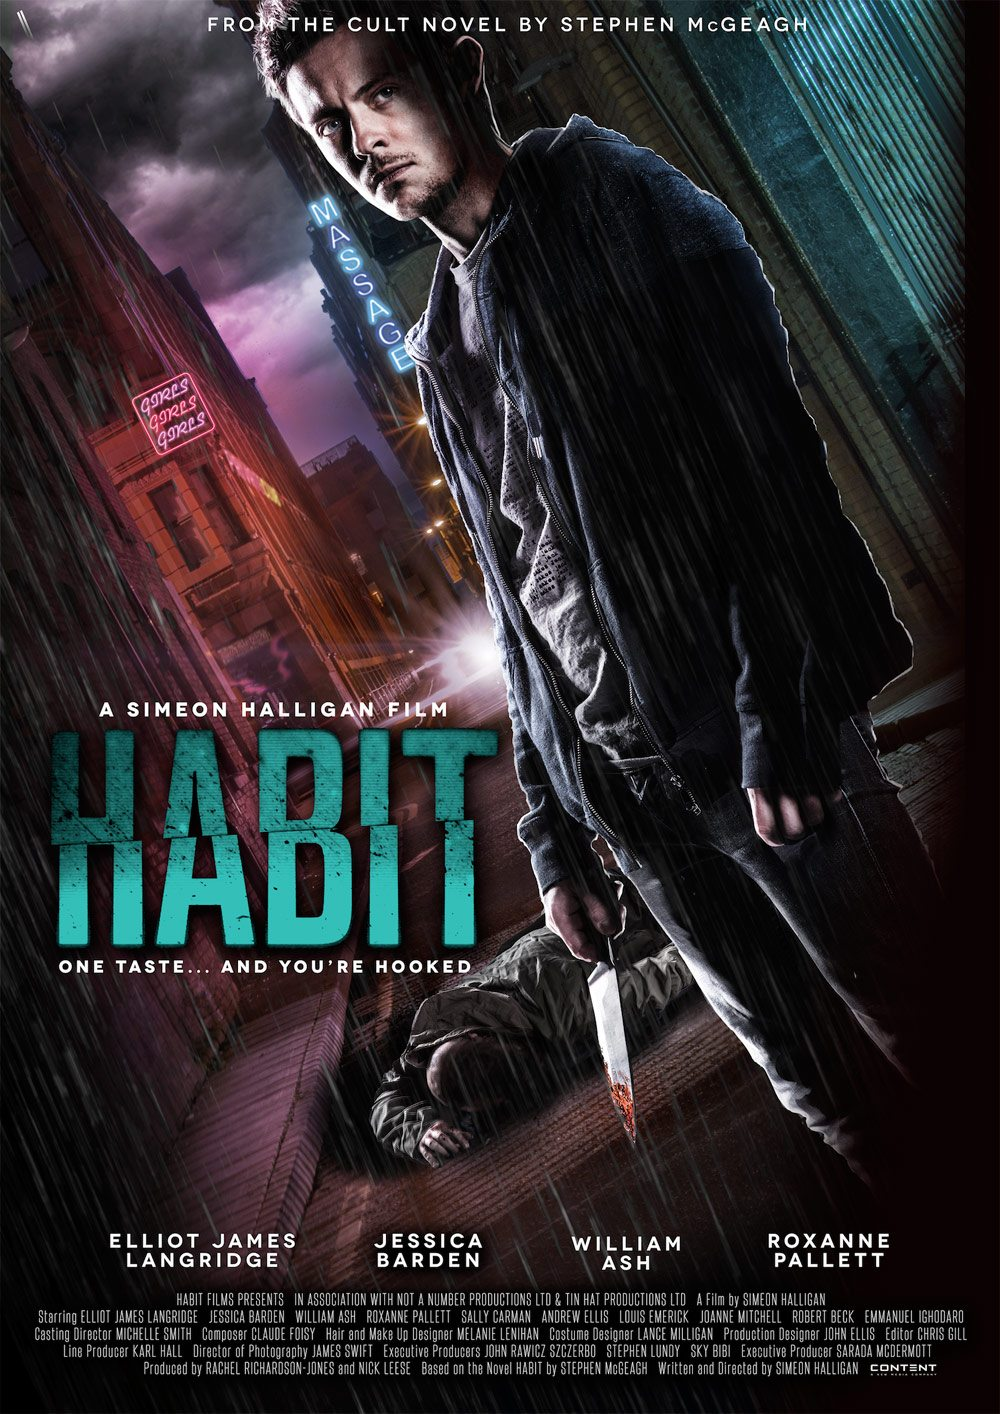 HABIT POSTER - Exclusive First Look at the Habit Trailer; New Poster, Stills, and More!